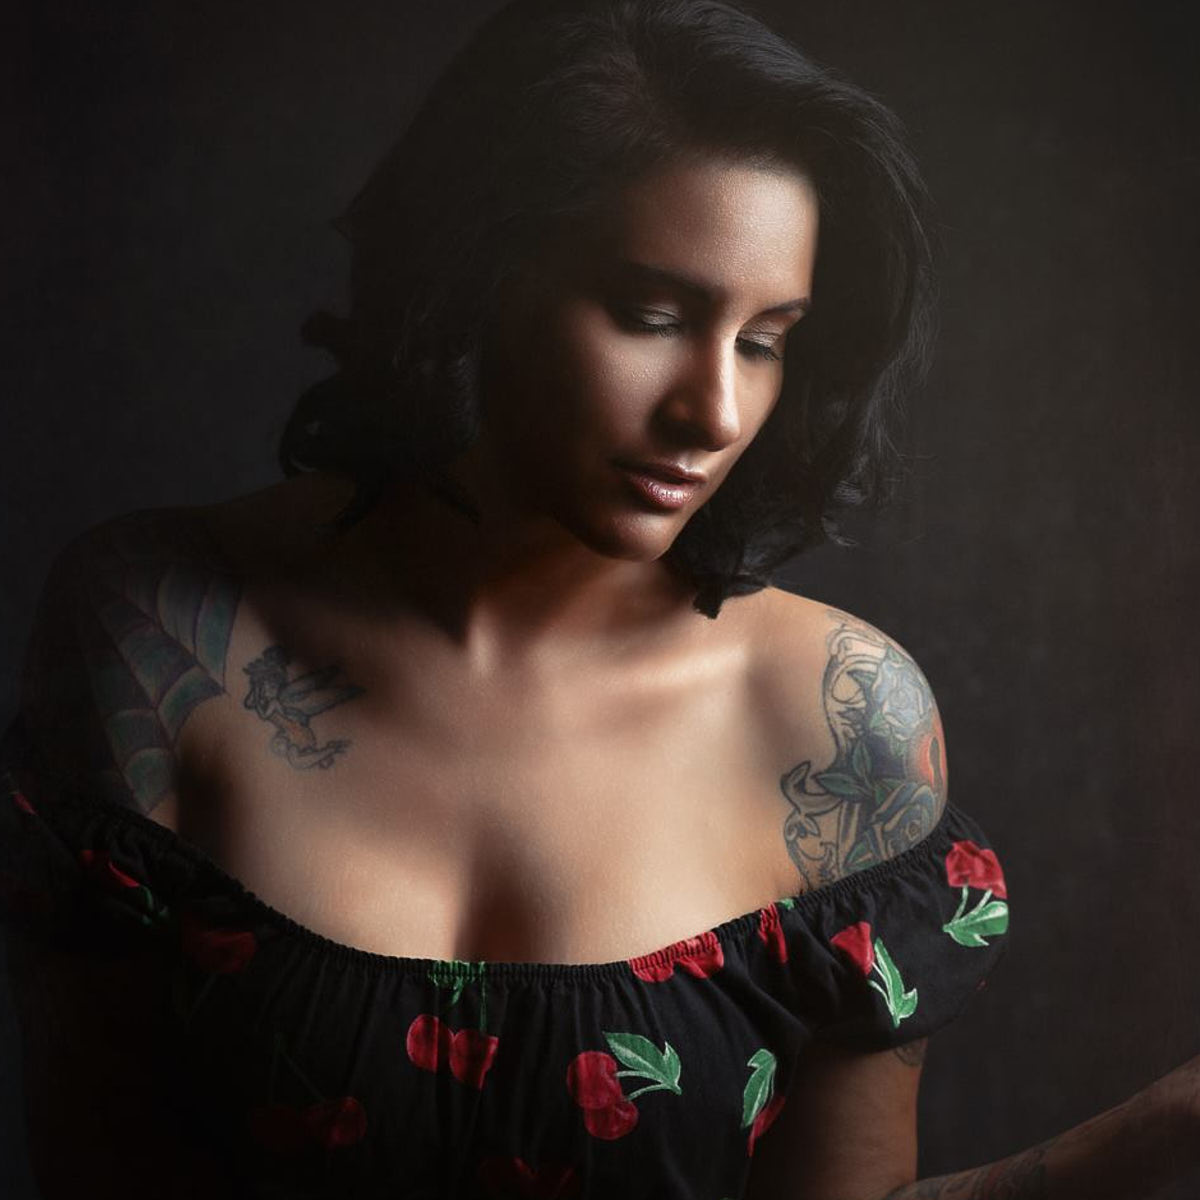 Glamour photo of a tattooed woman